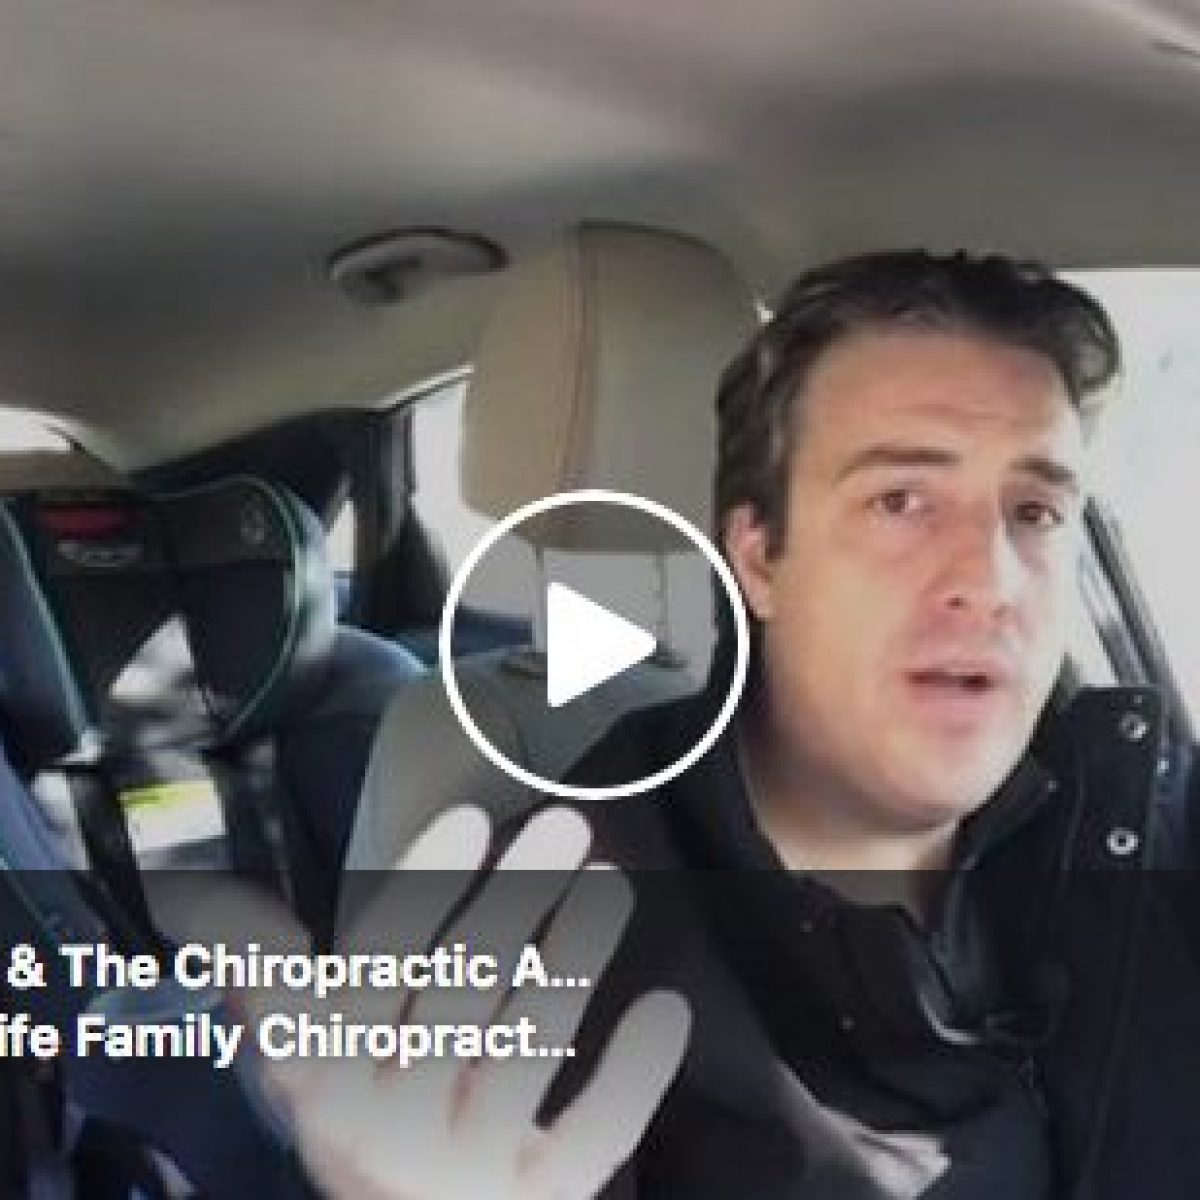 The 5 Senses & The Chiropractic Approach